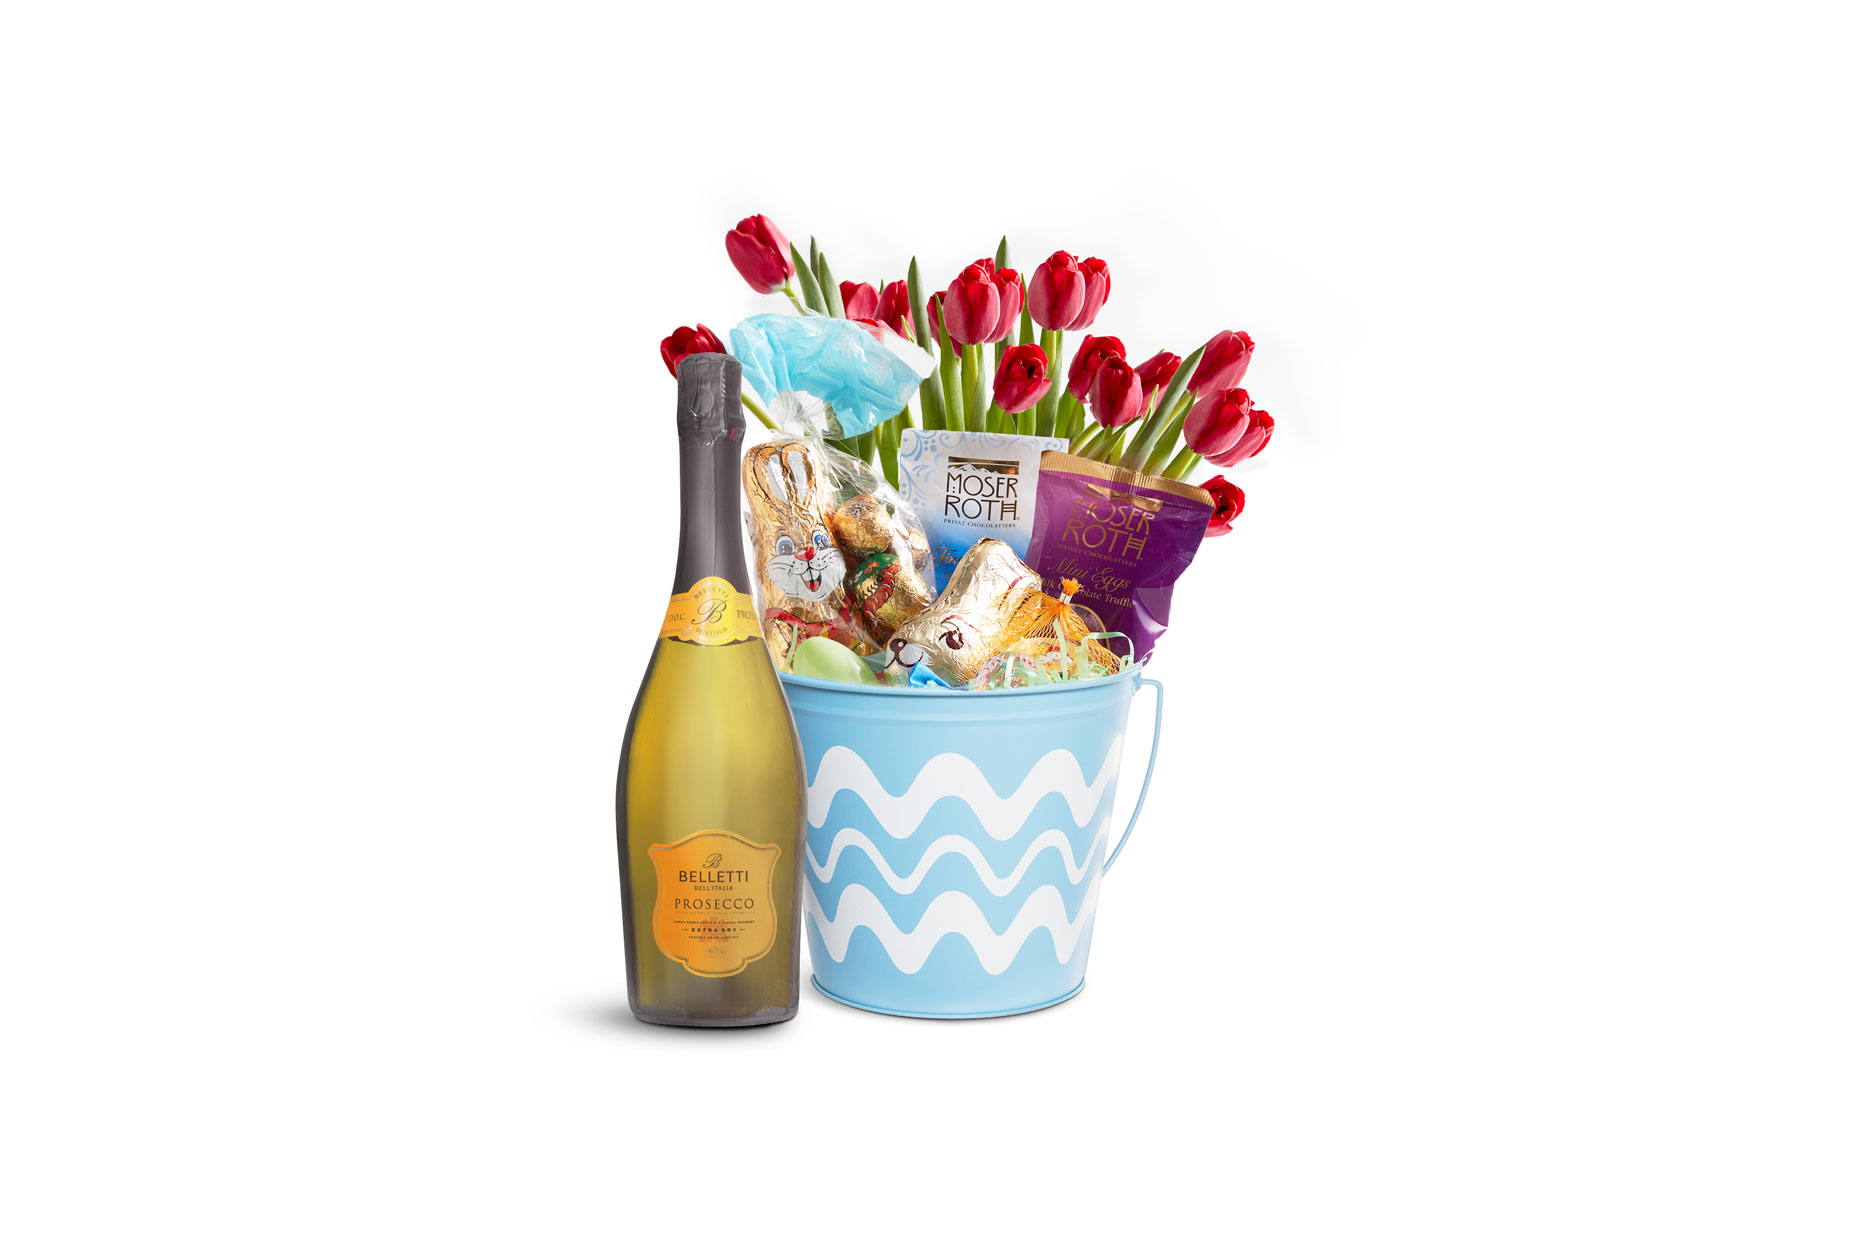 A best friend Easter basket with prosecco, chocolate and tulips.